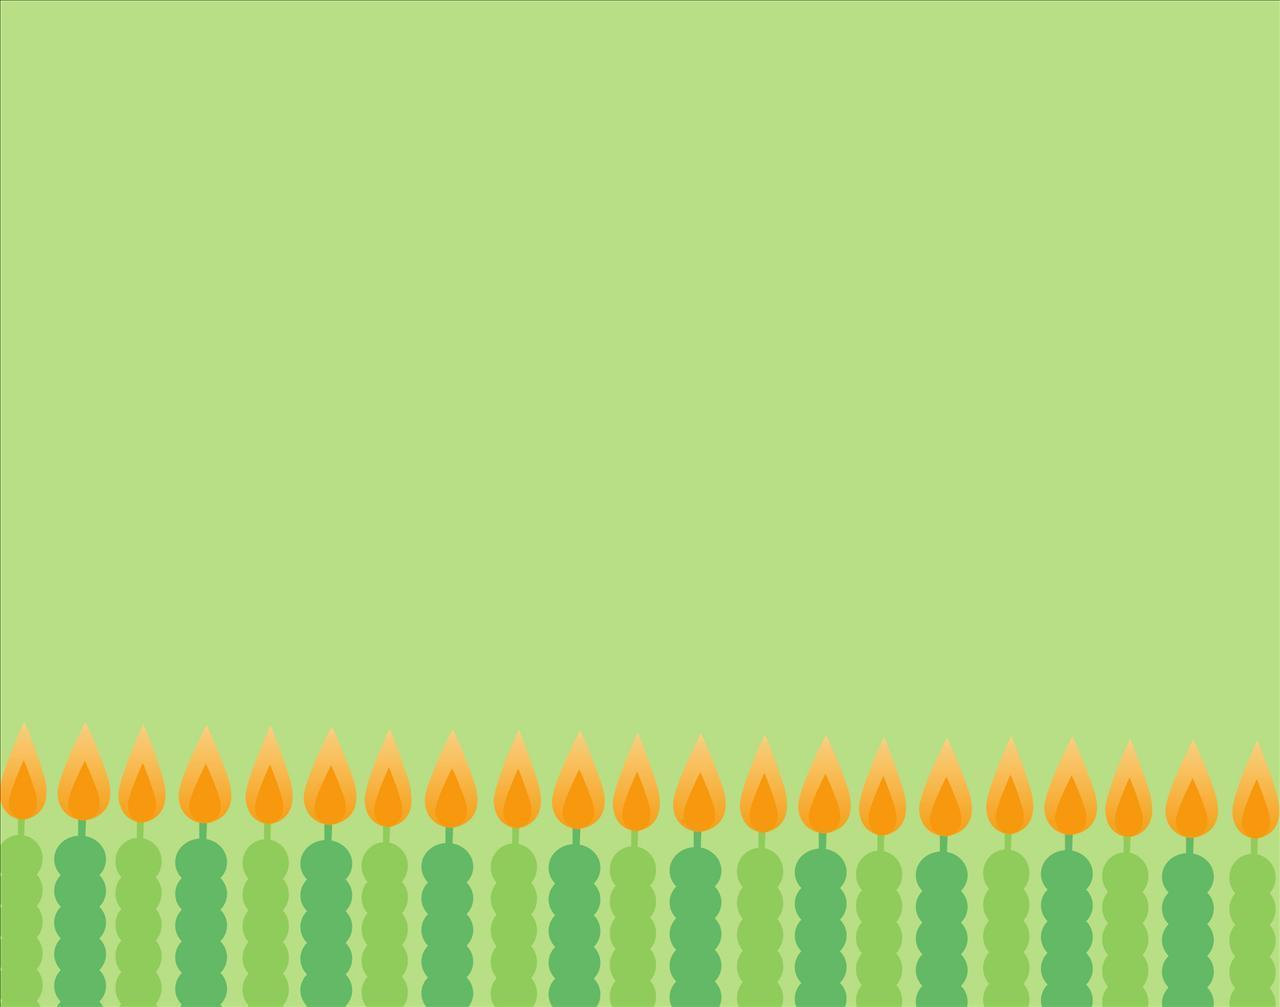 Green Birthday Background Image, Decorative Candles #734